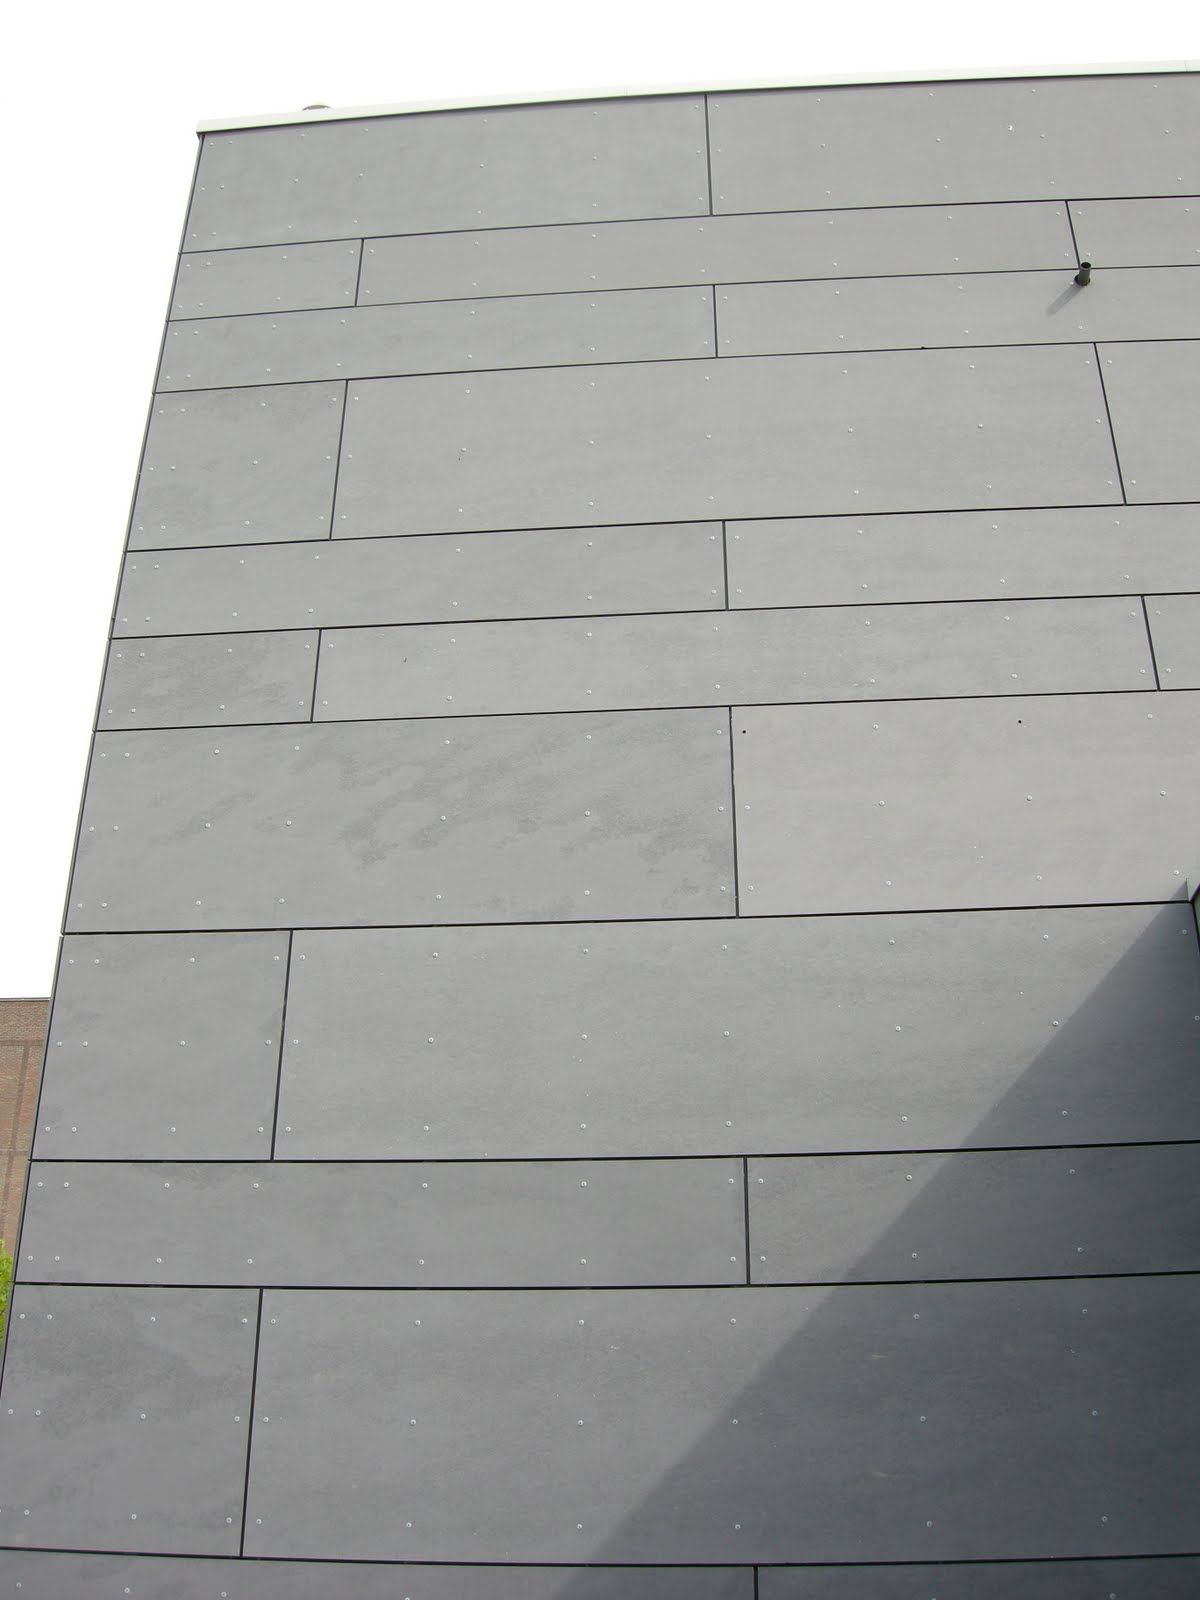 Fibre Cement Board Cladding : Engineered assemblies eternit fibre cement panel